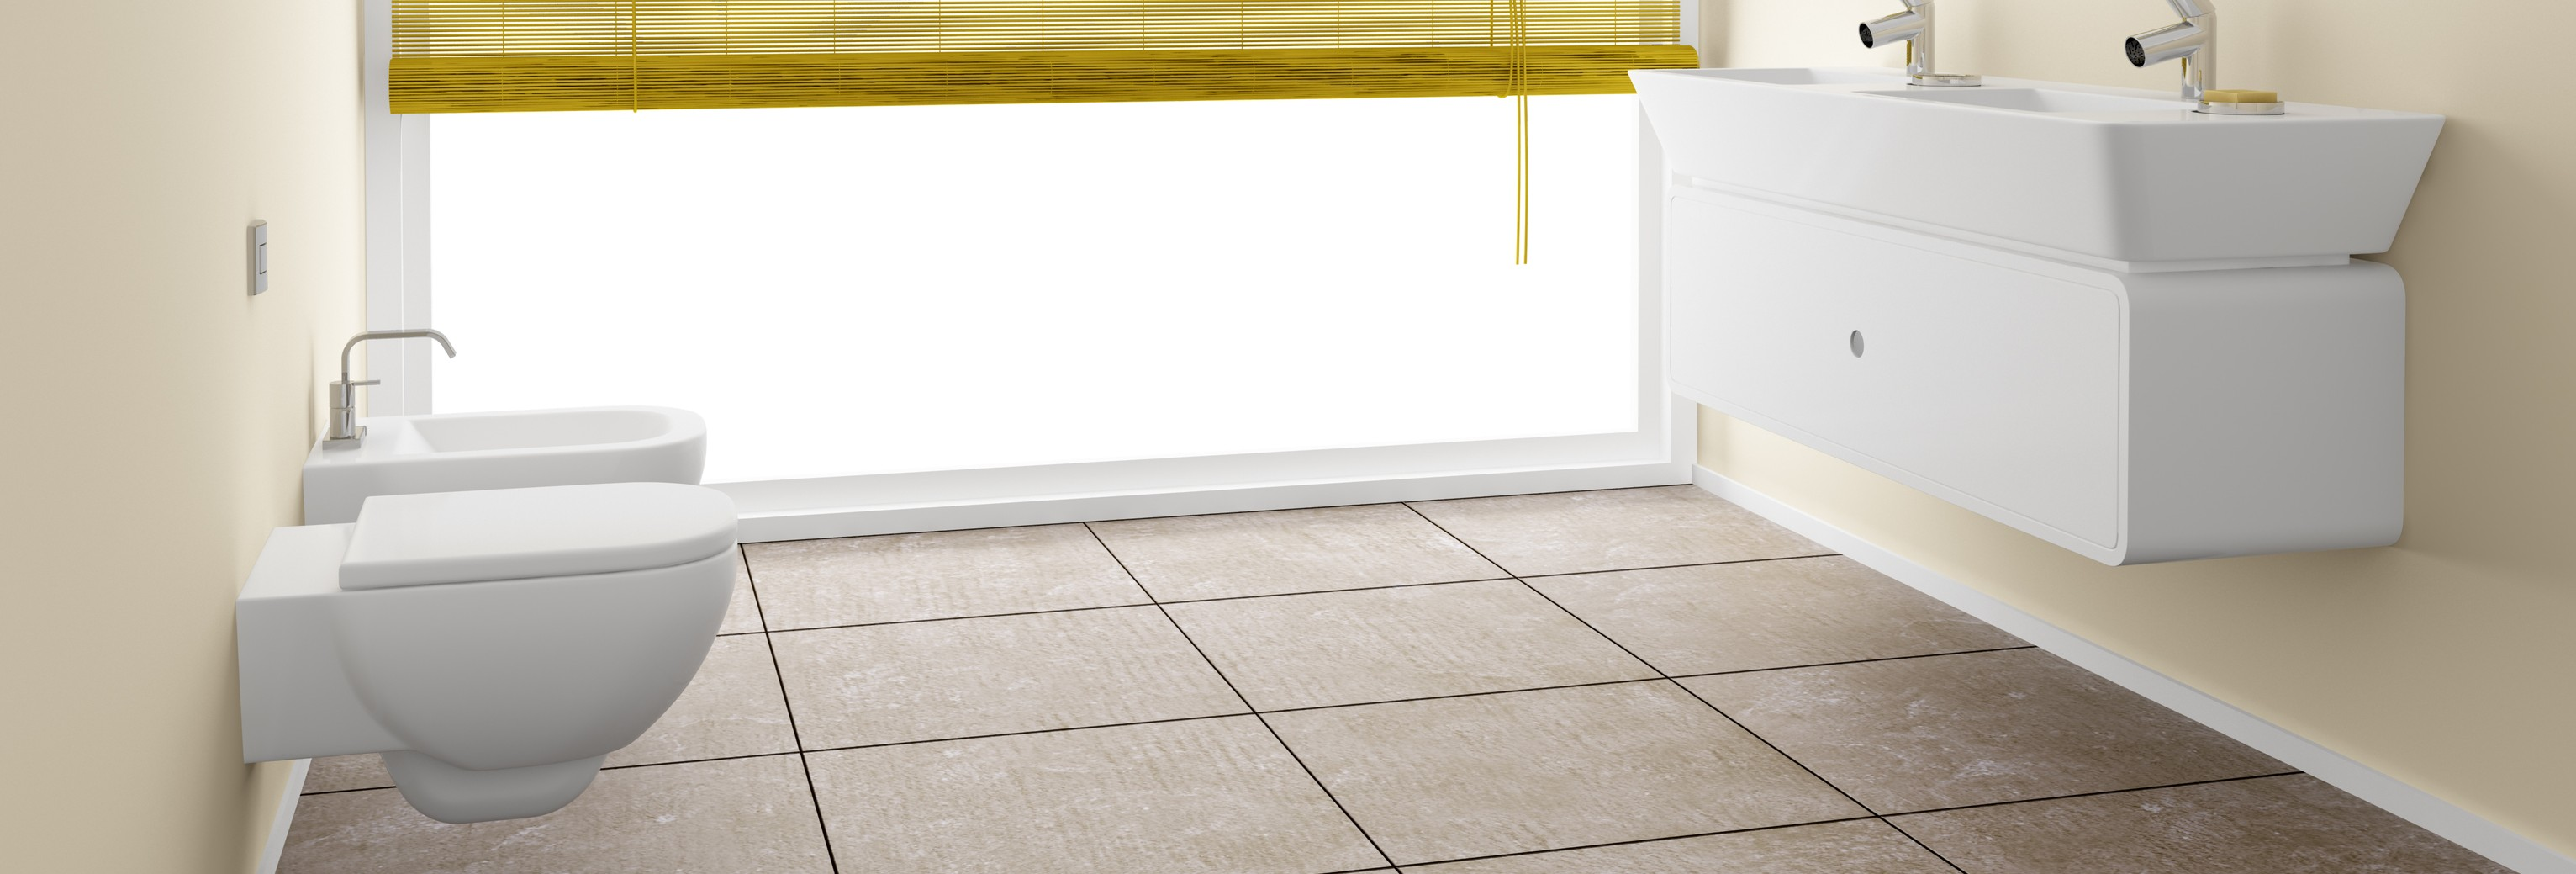 Simple, Non Harmful Steps To Clean Tile Grout In Your Bathroom